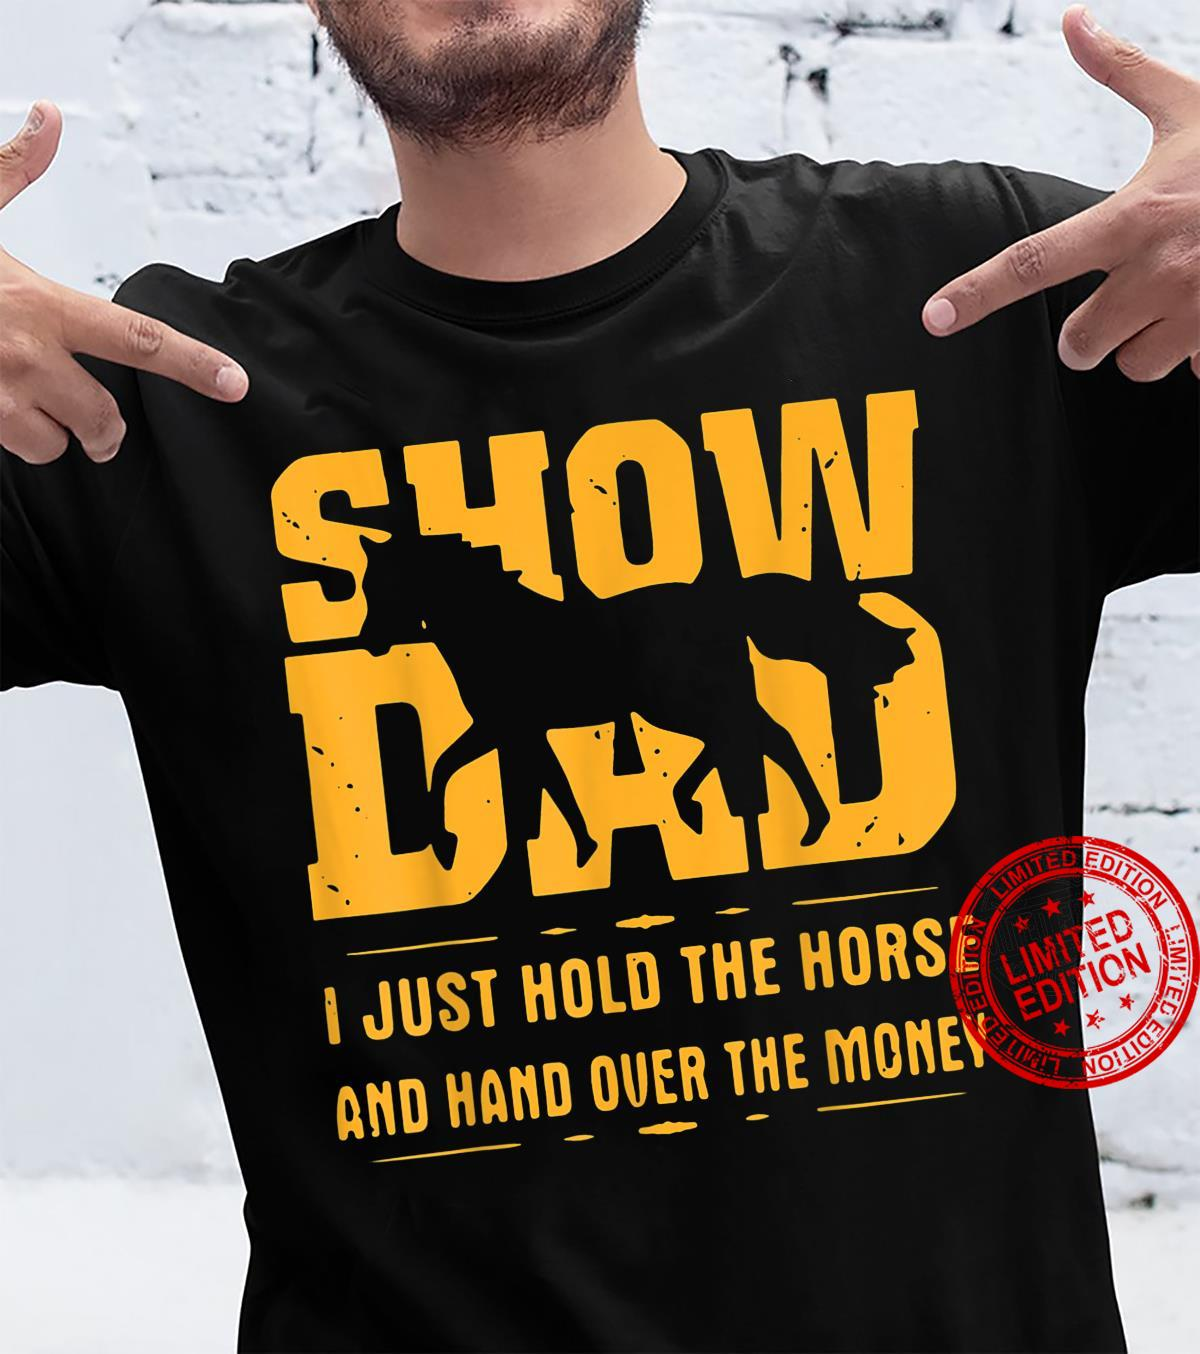 SHOW DAD I JUST HOLD THE HORSE AND HAND OVER THE MONEY SHIRT Shirt